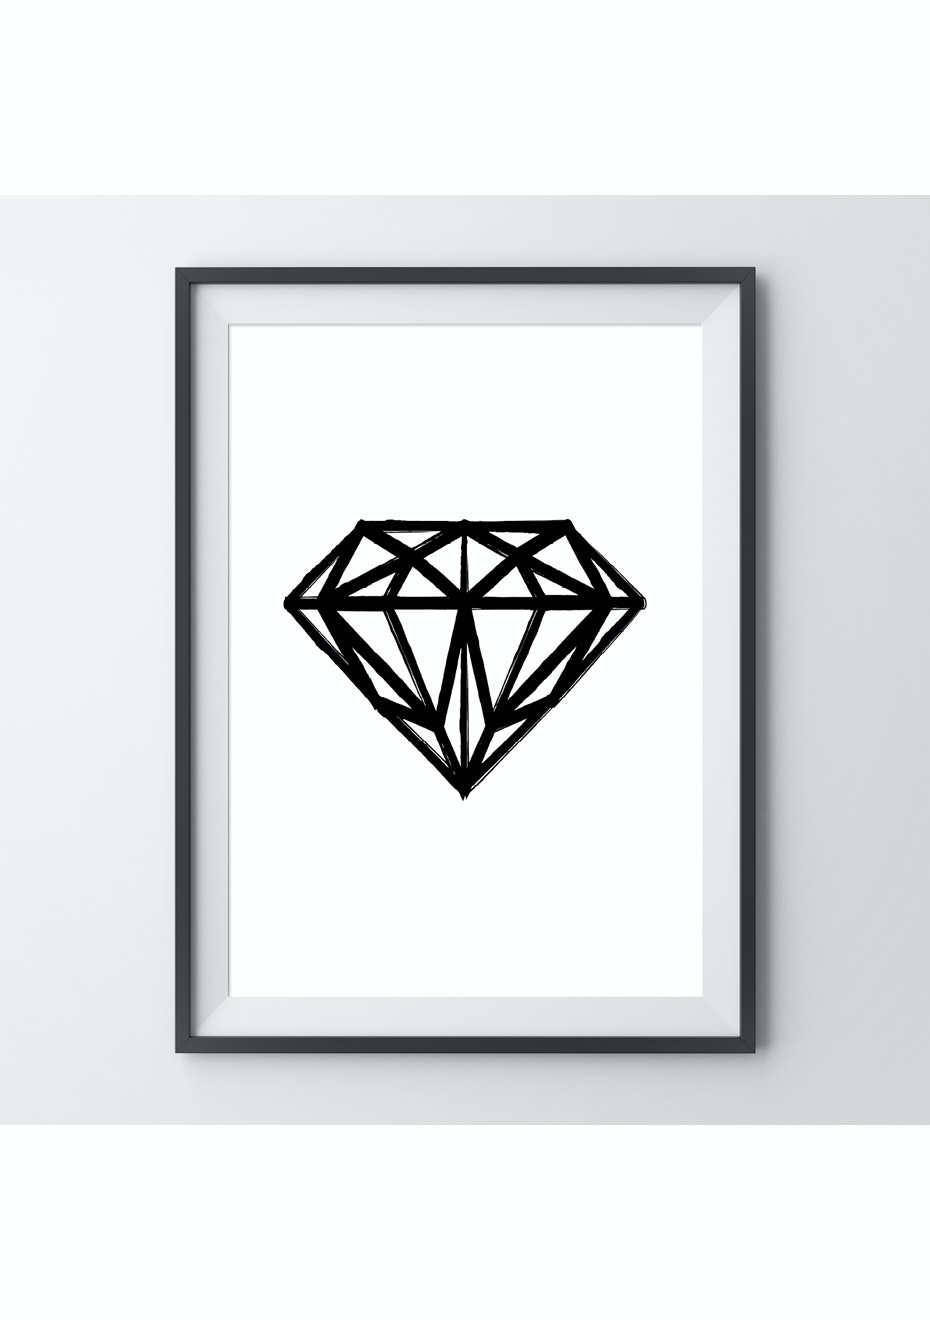 Simply Creative - Dark Diamond - A4 Monochrome Print